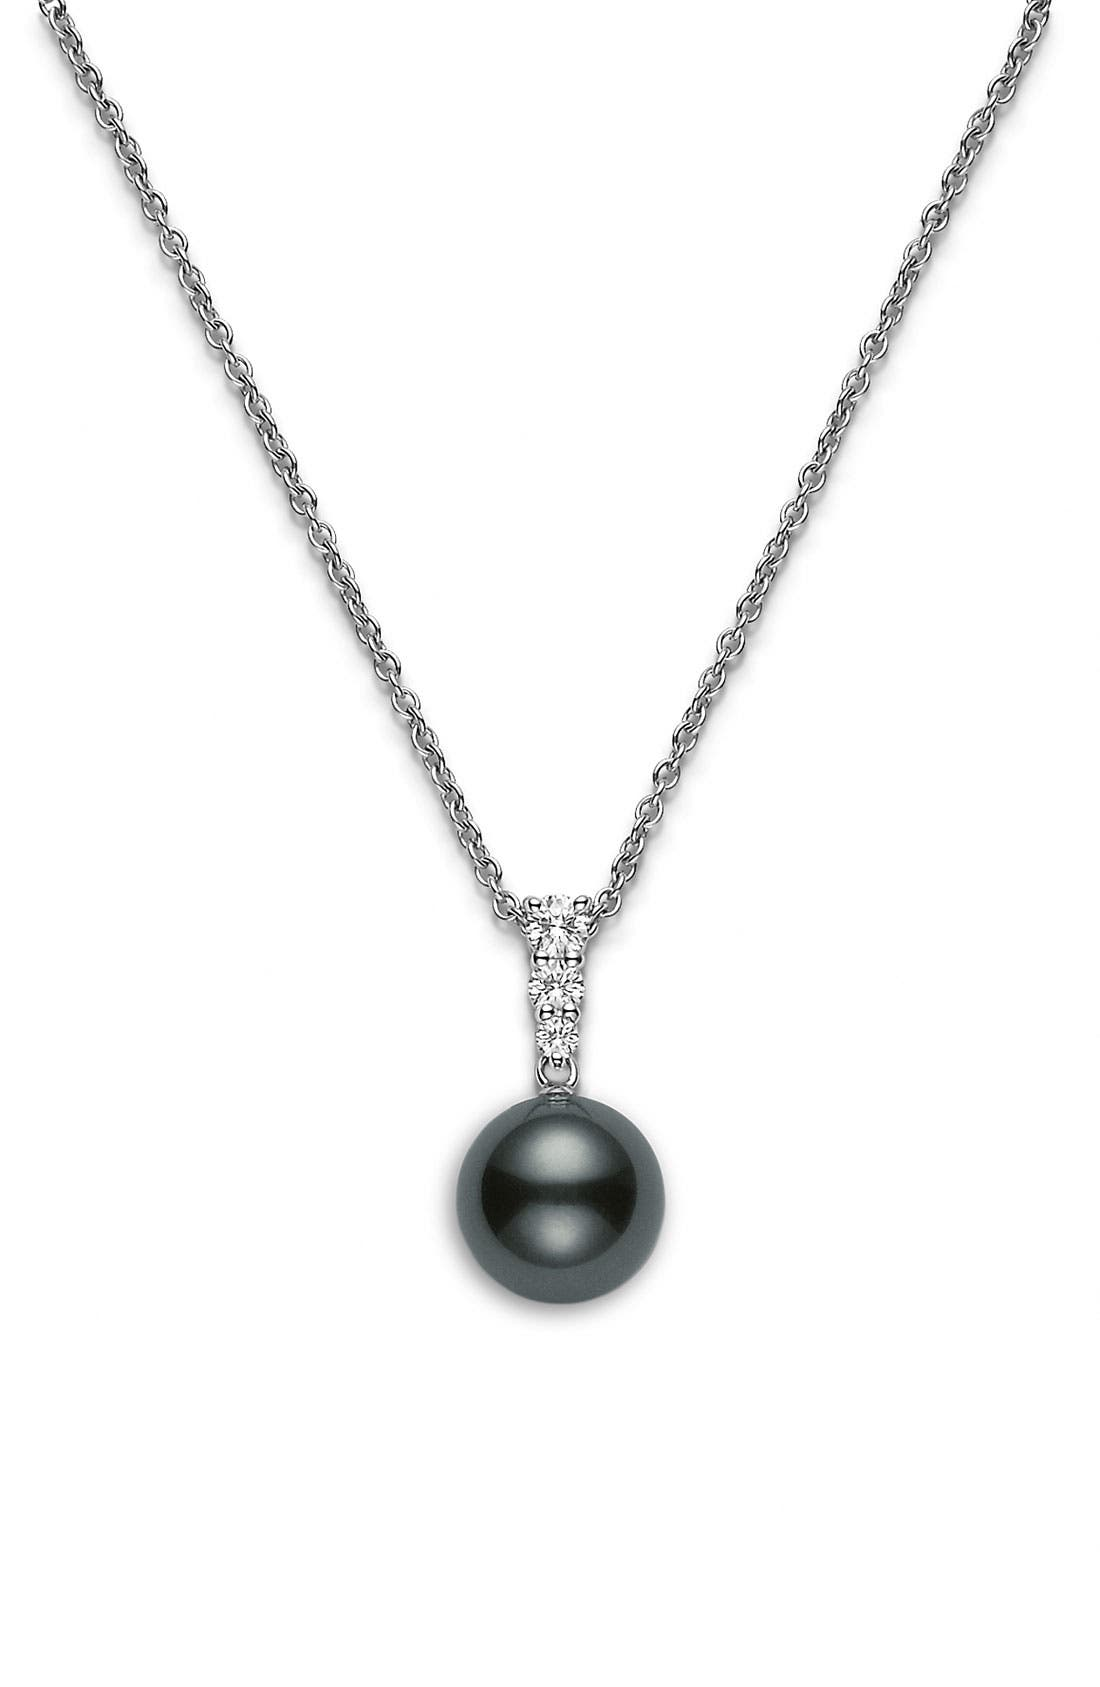 Main Image - Mikimoto 'Morning Dew' Black South Sea Cultured Pearl & Diamond Pendant Necklace